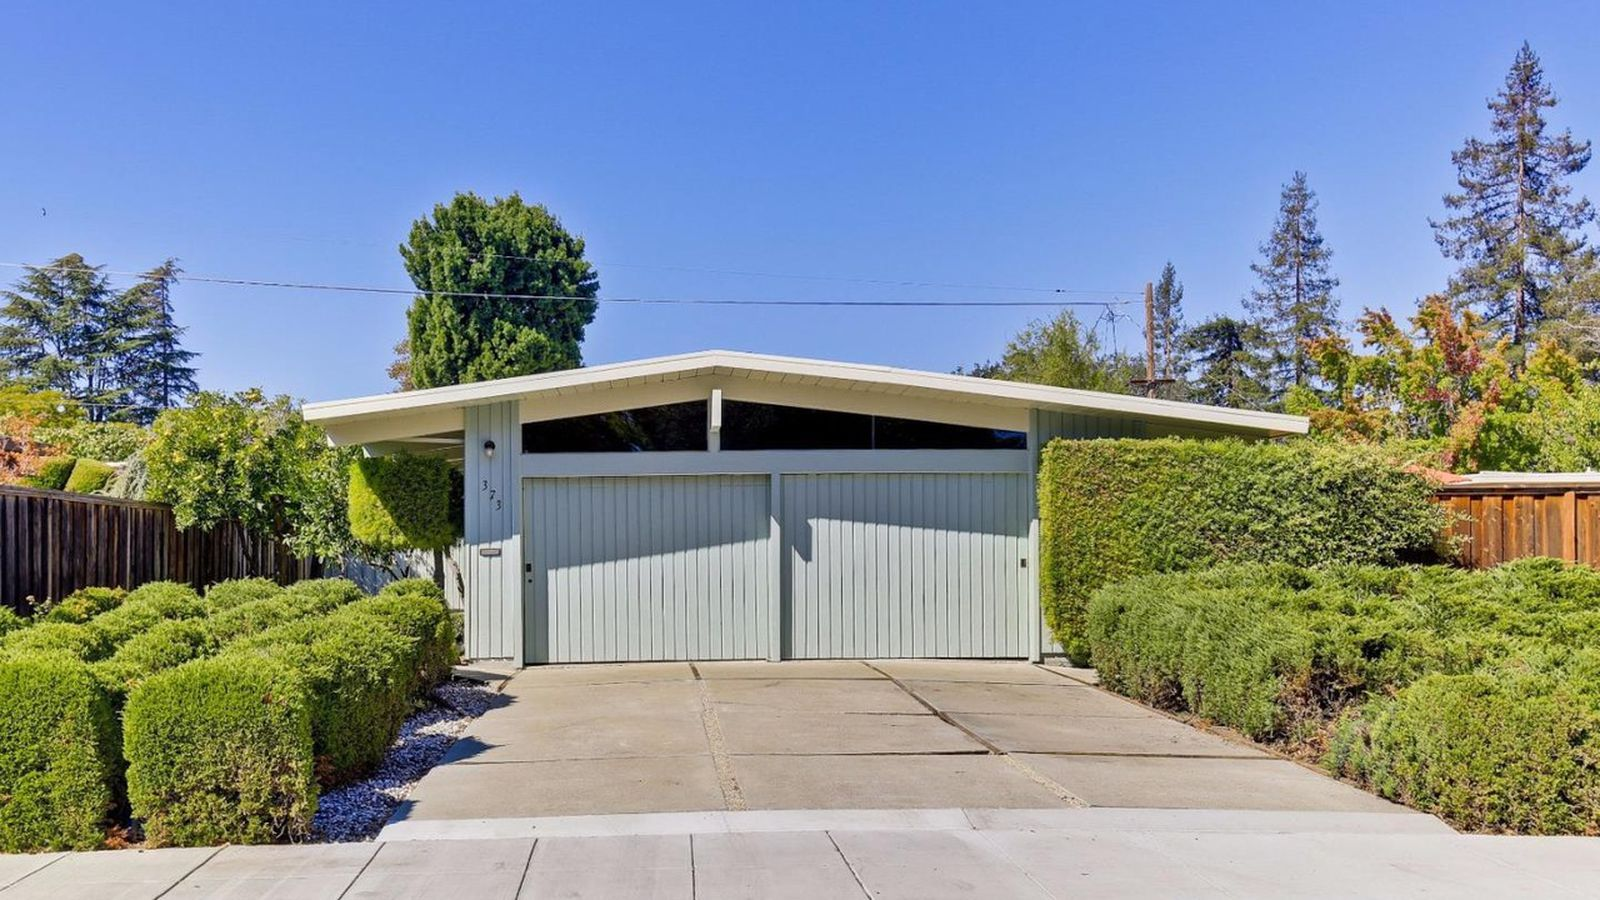 Palo alto eichler featuring revamped interiors asks 2 for Eichler homes for sale bay area